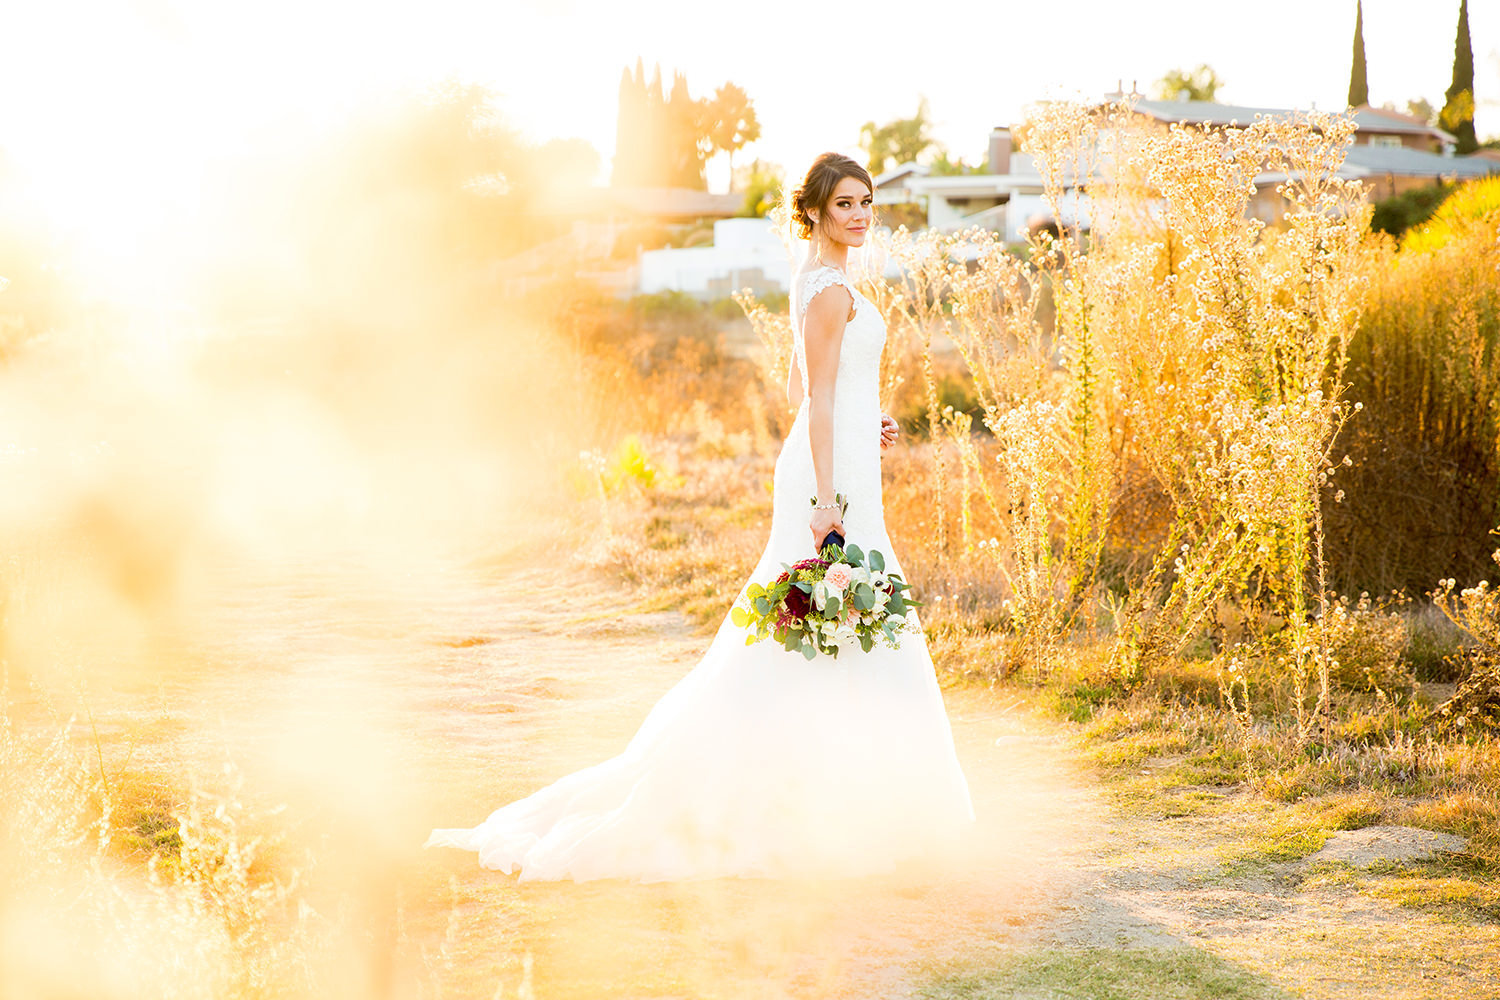 stunning bride image at carlton oaks country club